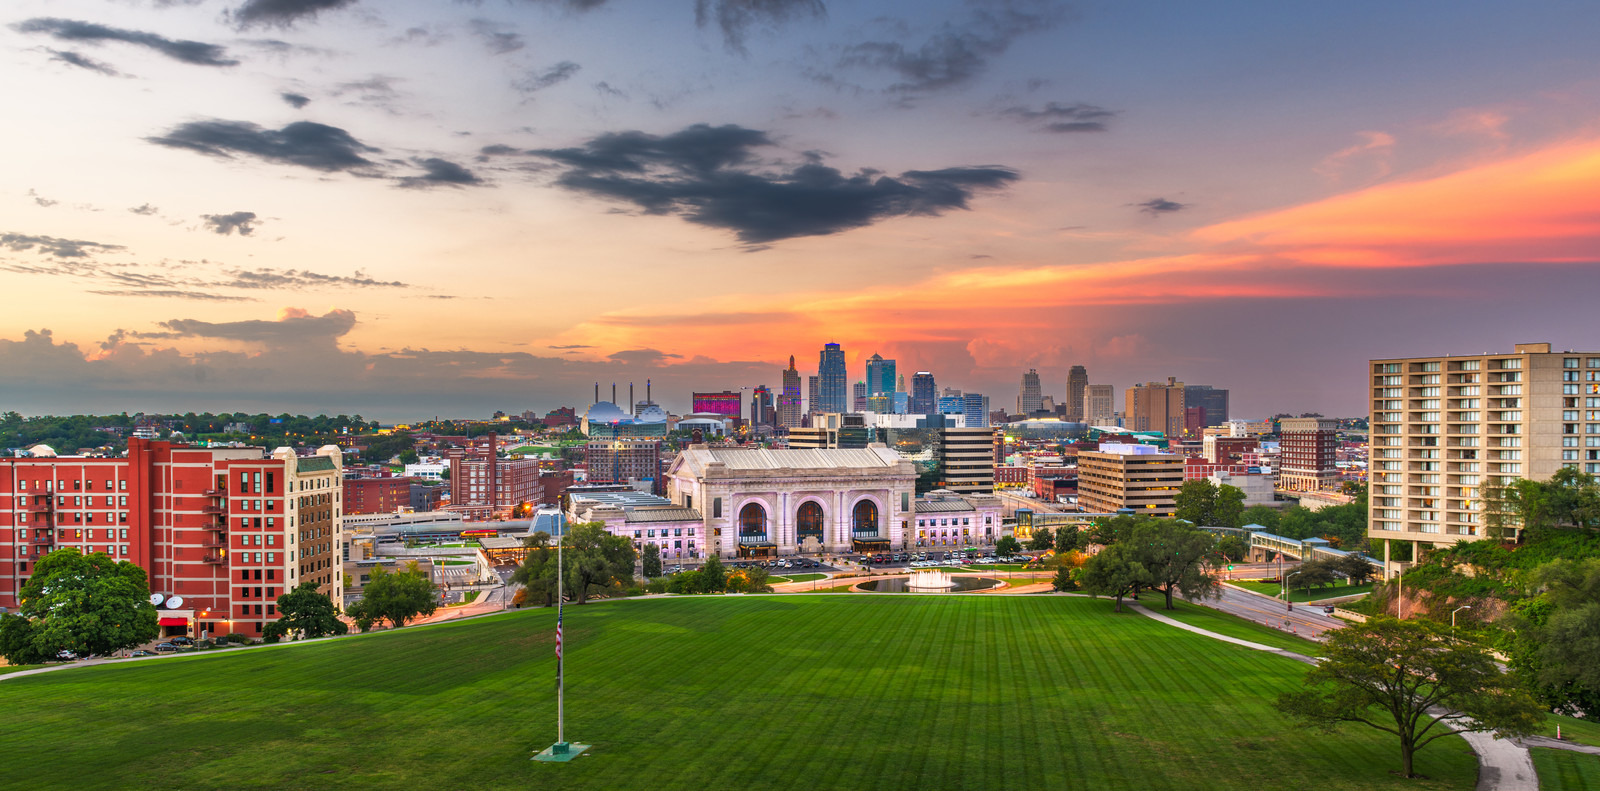 Photo from National Memorial WWI Park with lush green grass and beautiful trees lining the green  of Kansas City Missouri skyline with union station at the center